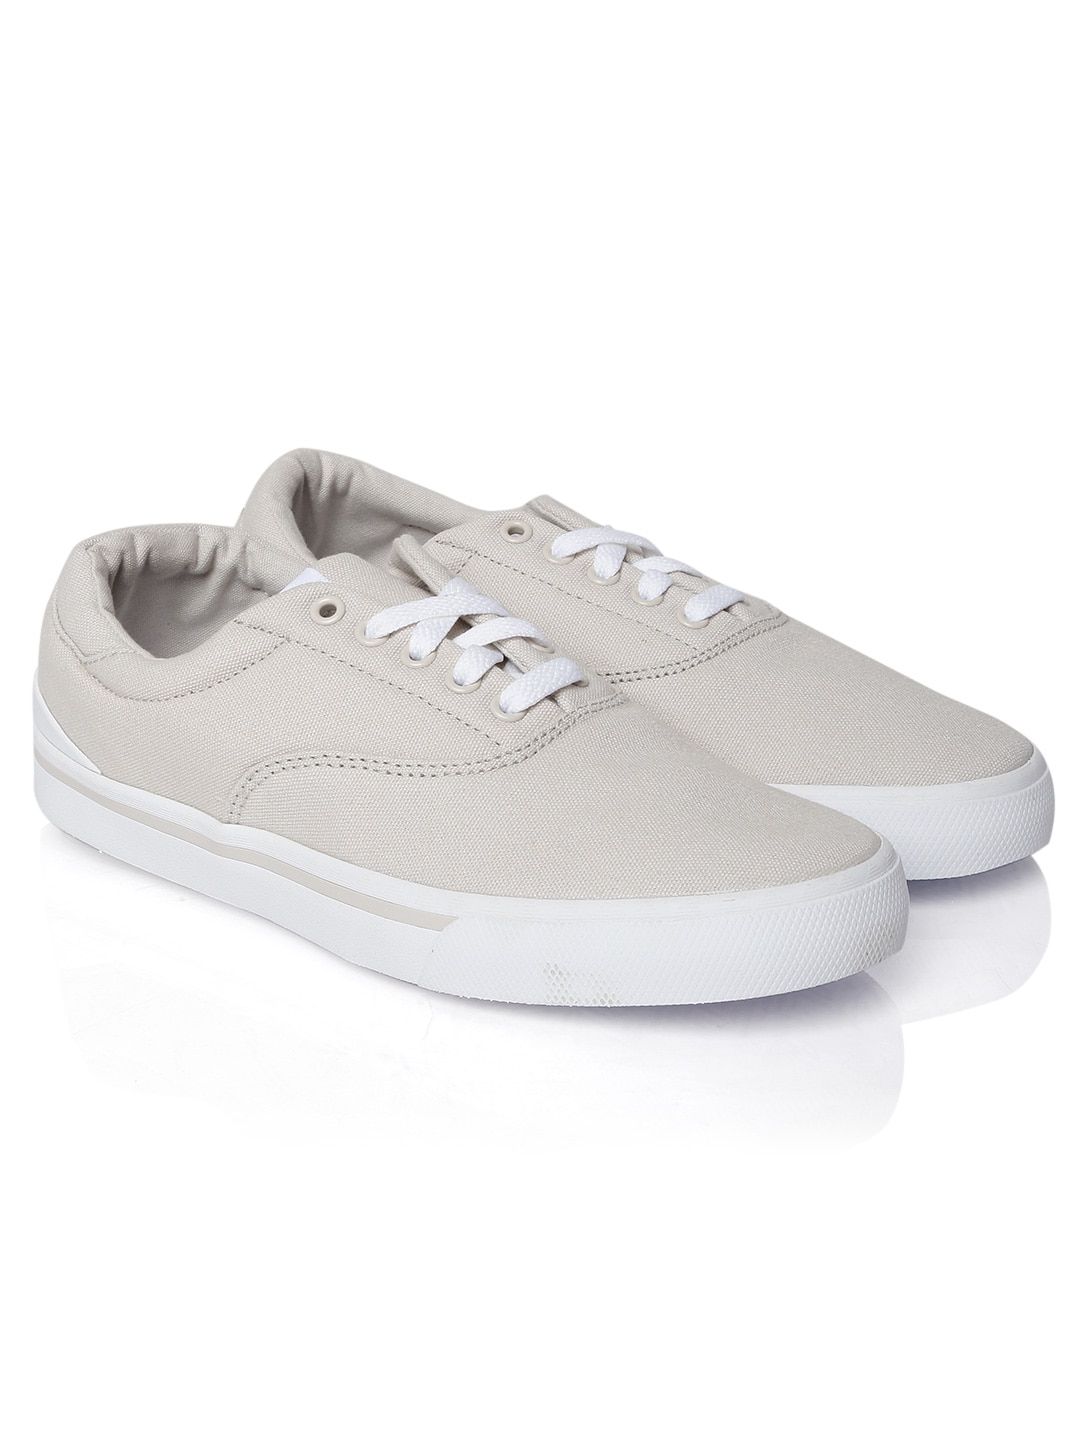 Adidas neo f98083 Men Beige Park St Classic Casual Shoes- Price in India e65ae48bd